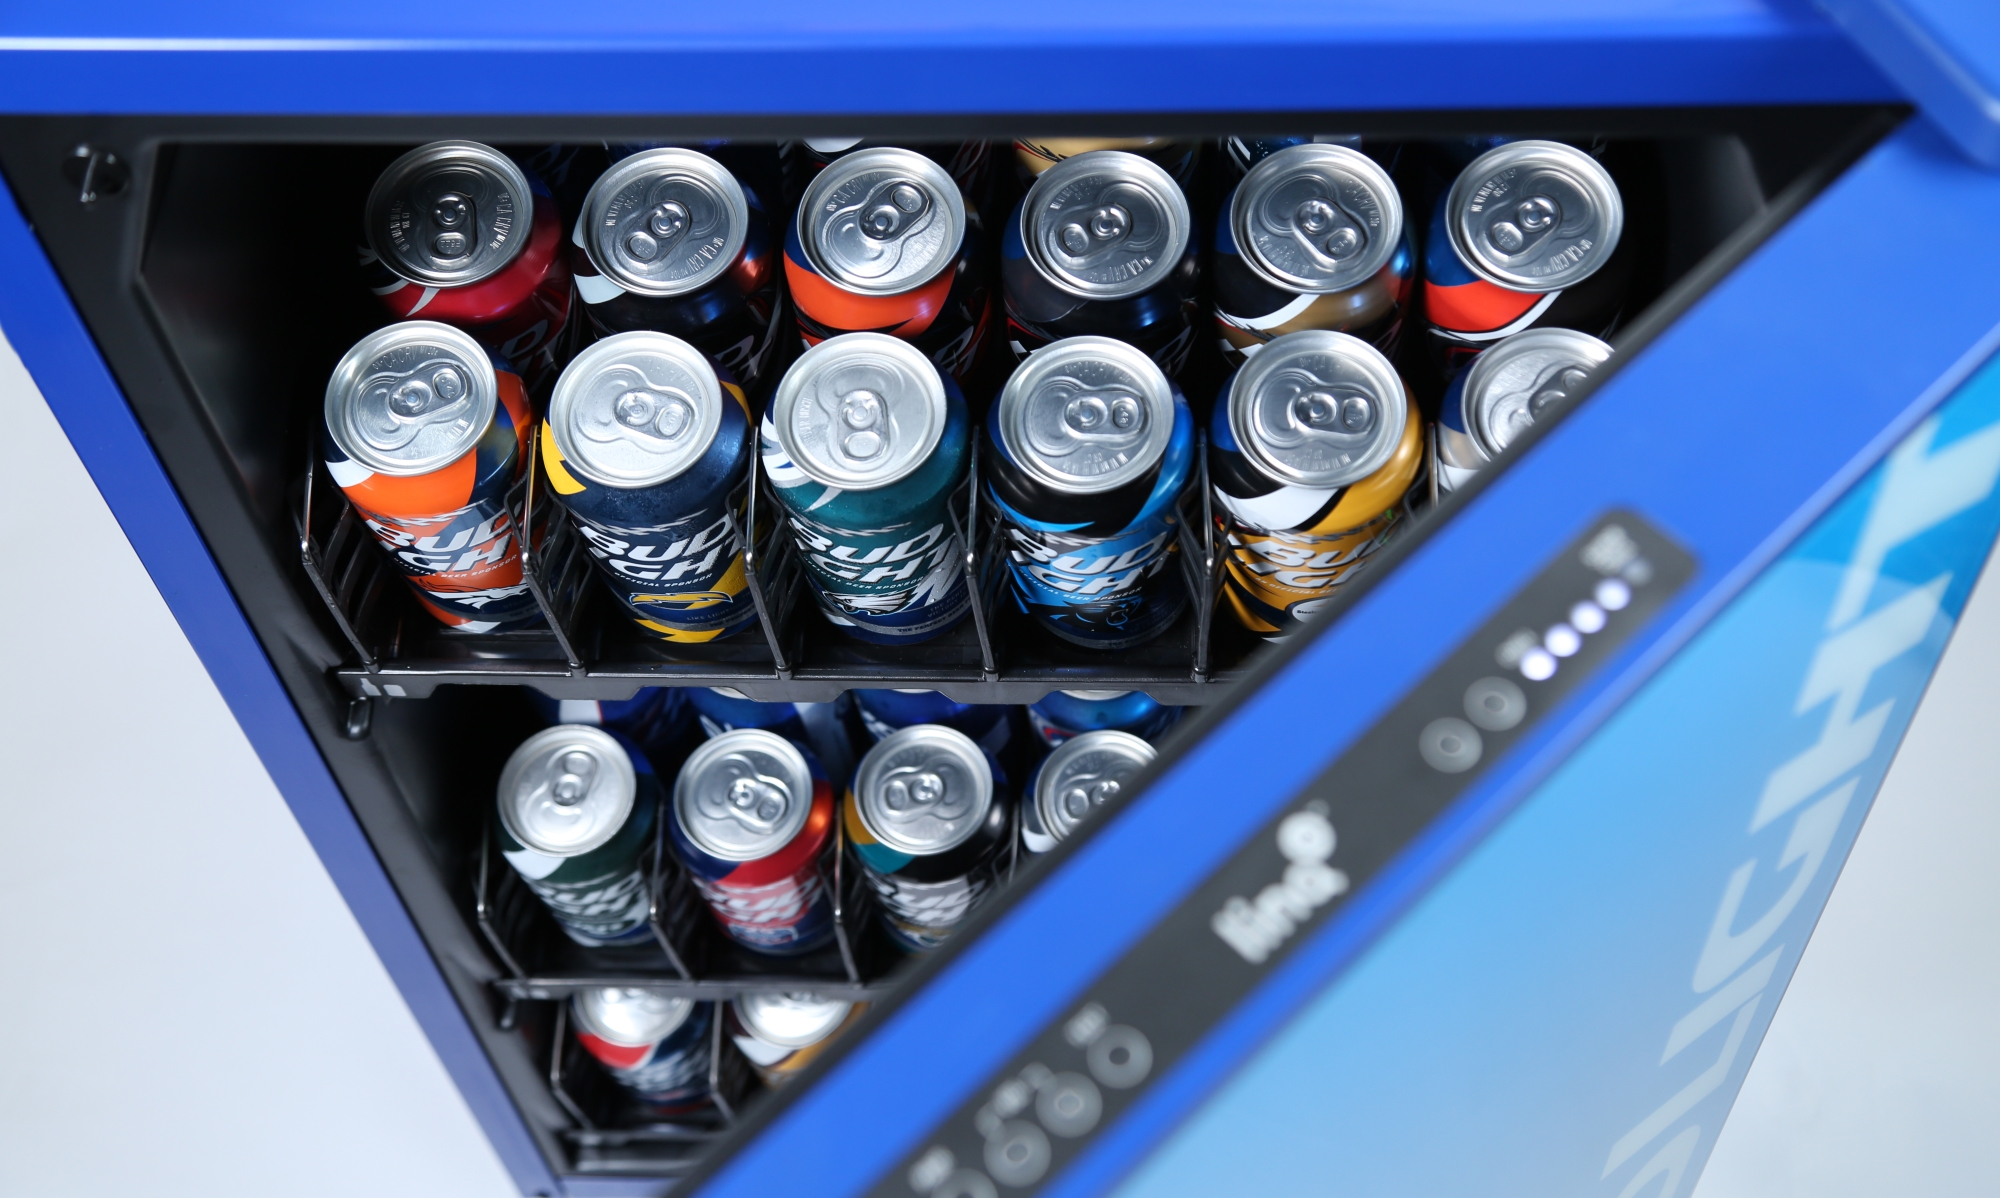 Bud Light Launches a Smart Fridge for Beer and NFL Alerts